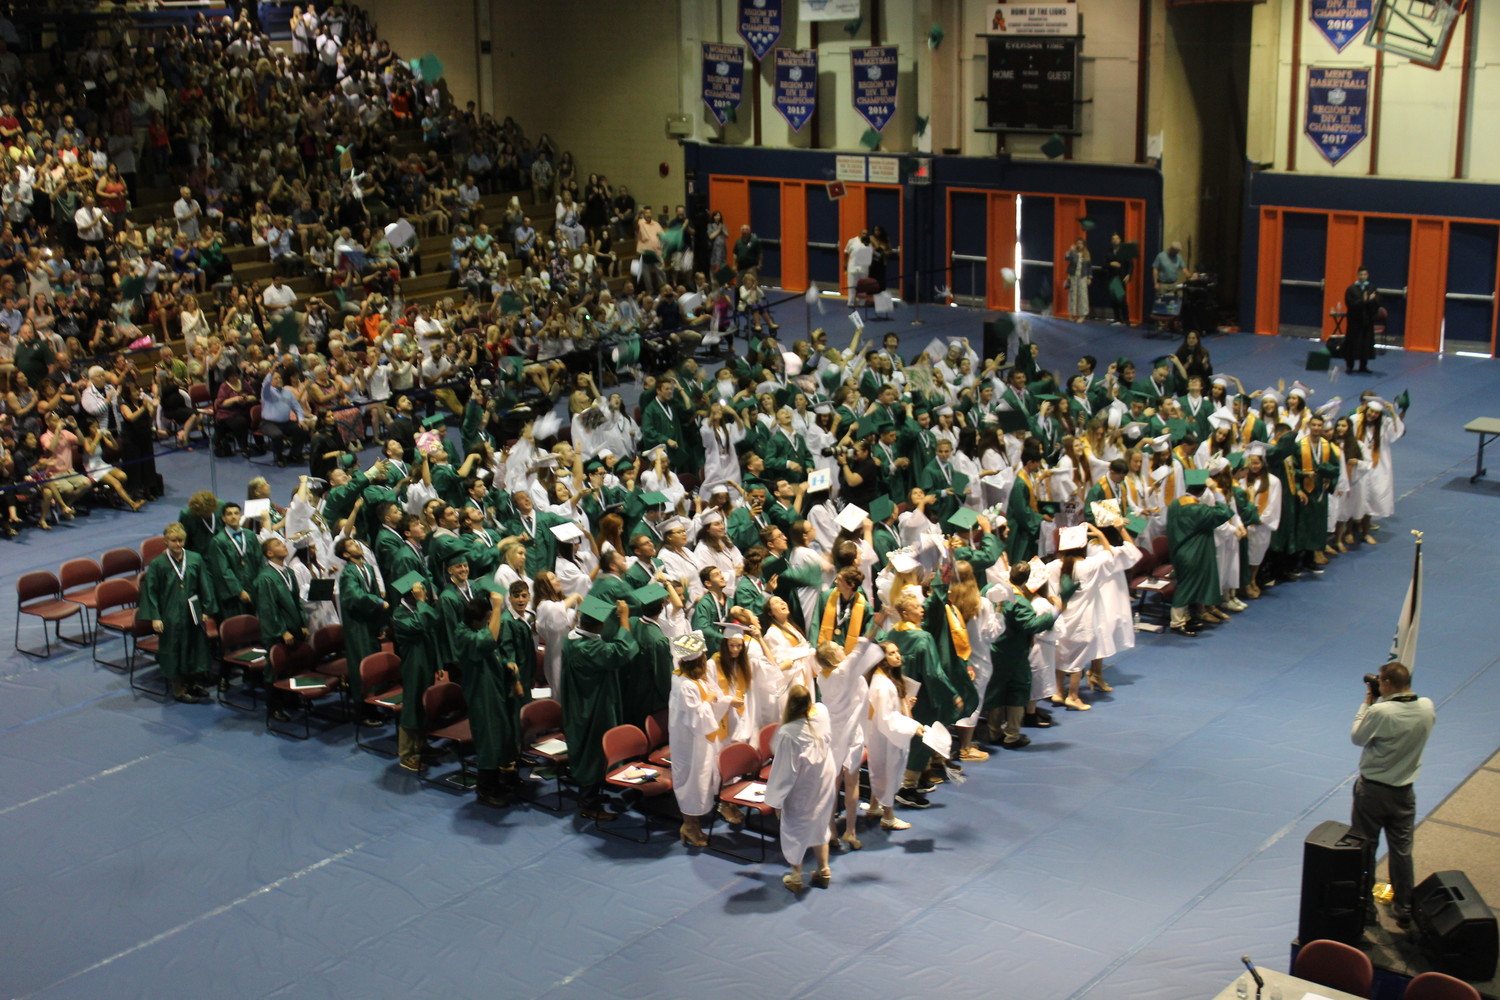 At Seaford High School's 61st annual commencement ceremony, 178 Vikings graduated and were presented with their high school diplomas.